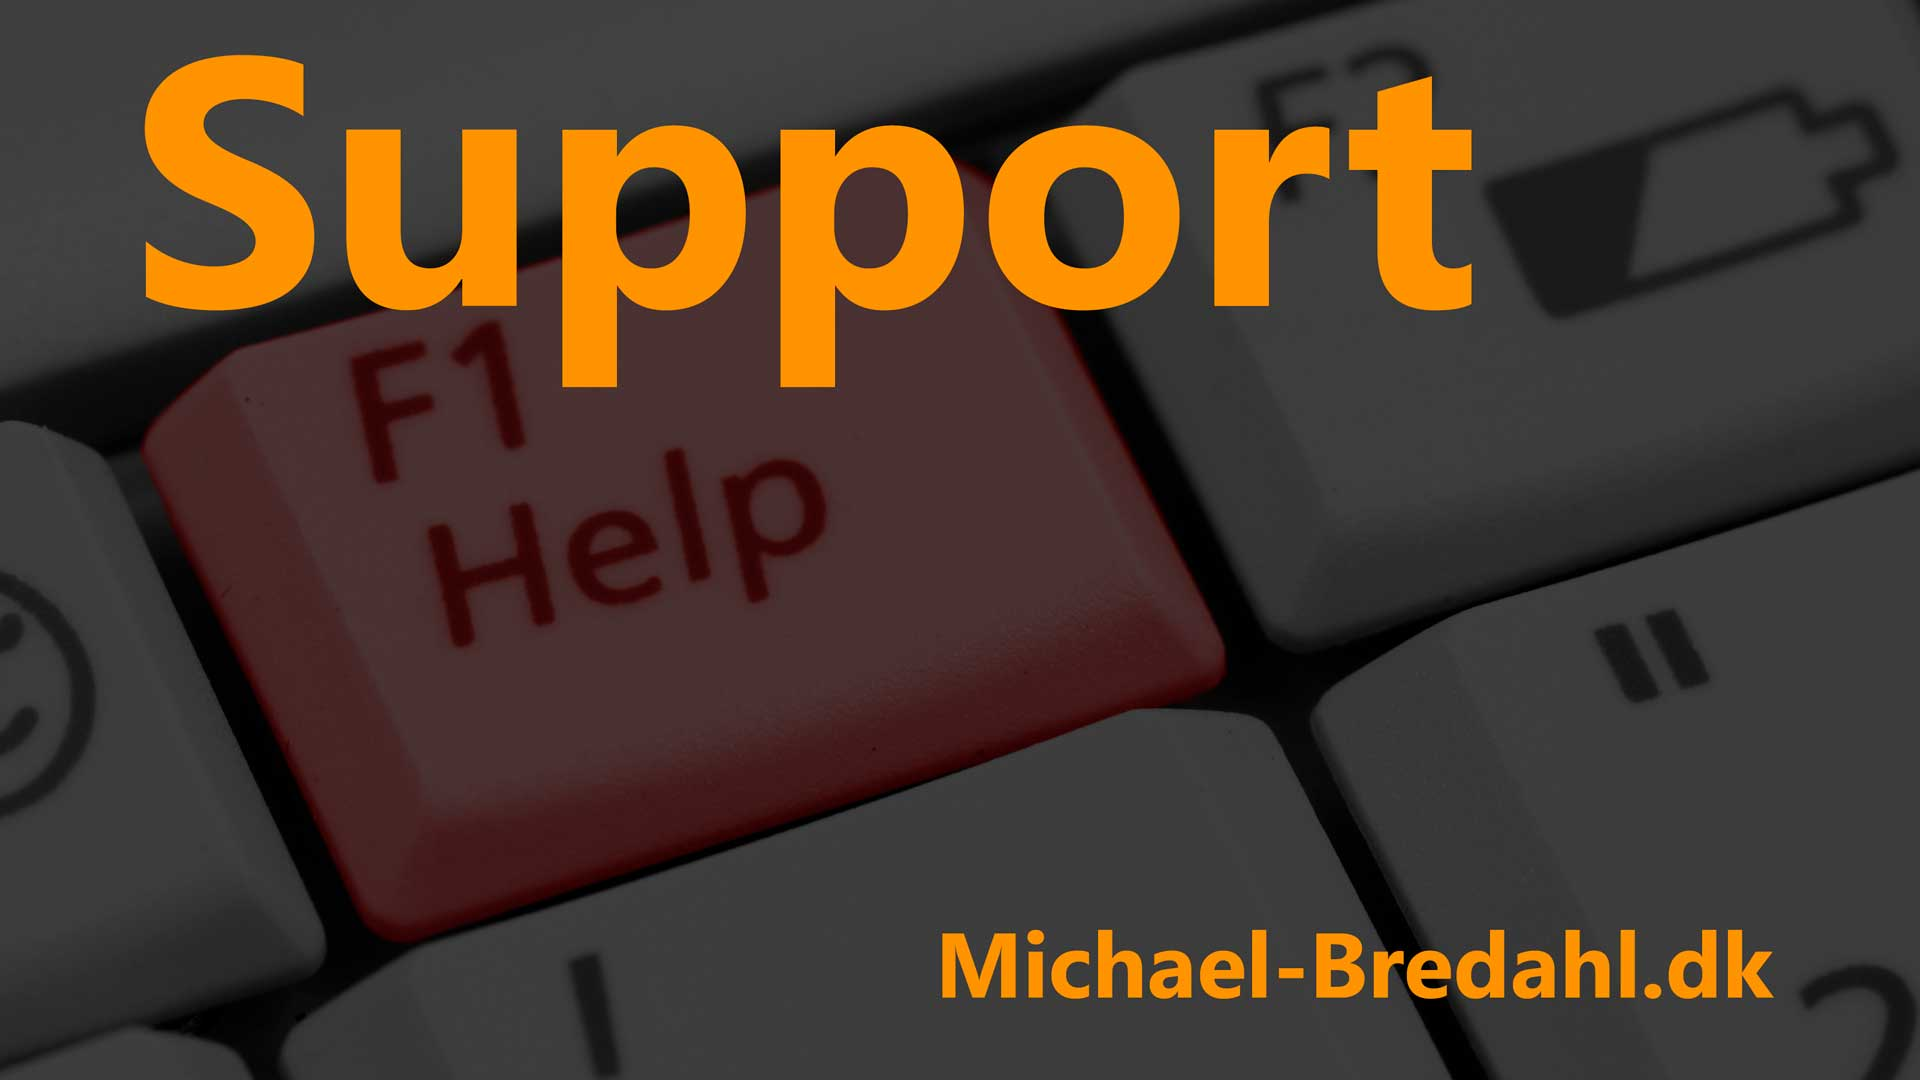 Support med Michael Bredahl